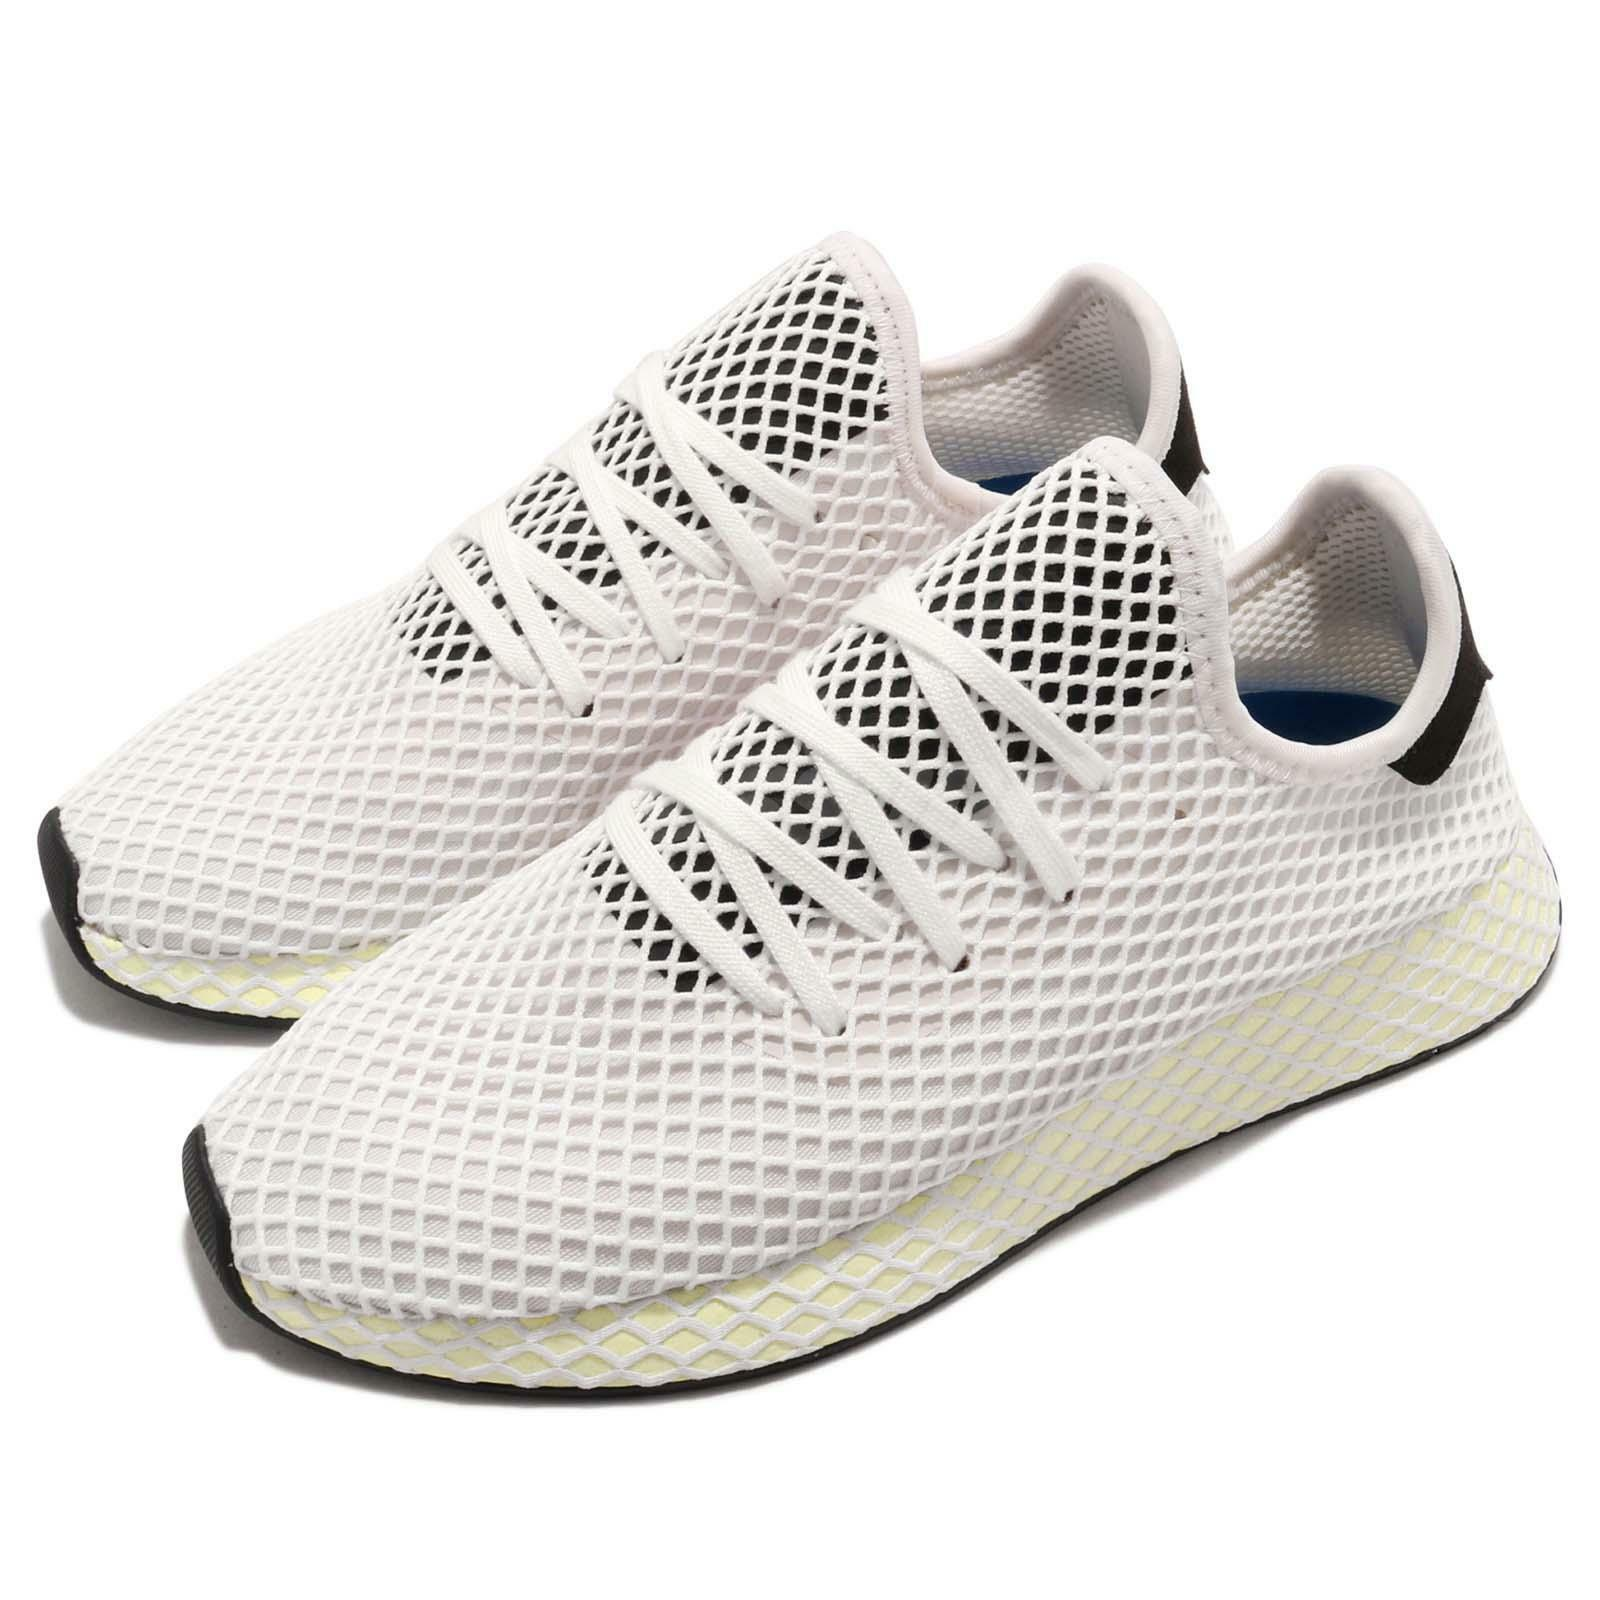 {CQ2629} MEN'S ADIDAS ORIGINALS DEERUPT RUNNER SHOE BLACK WHITE NEW